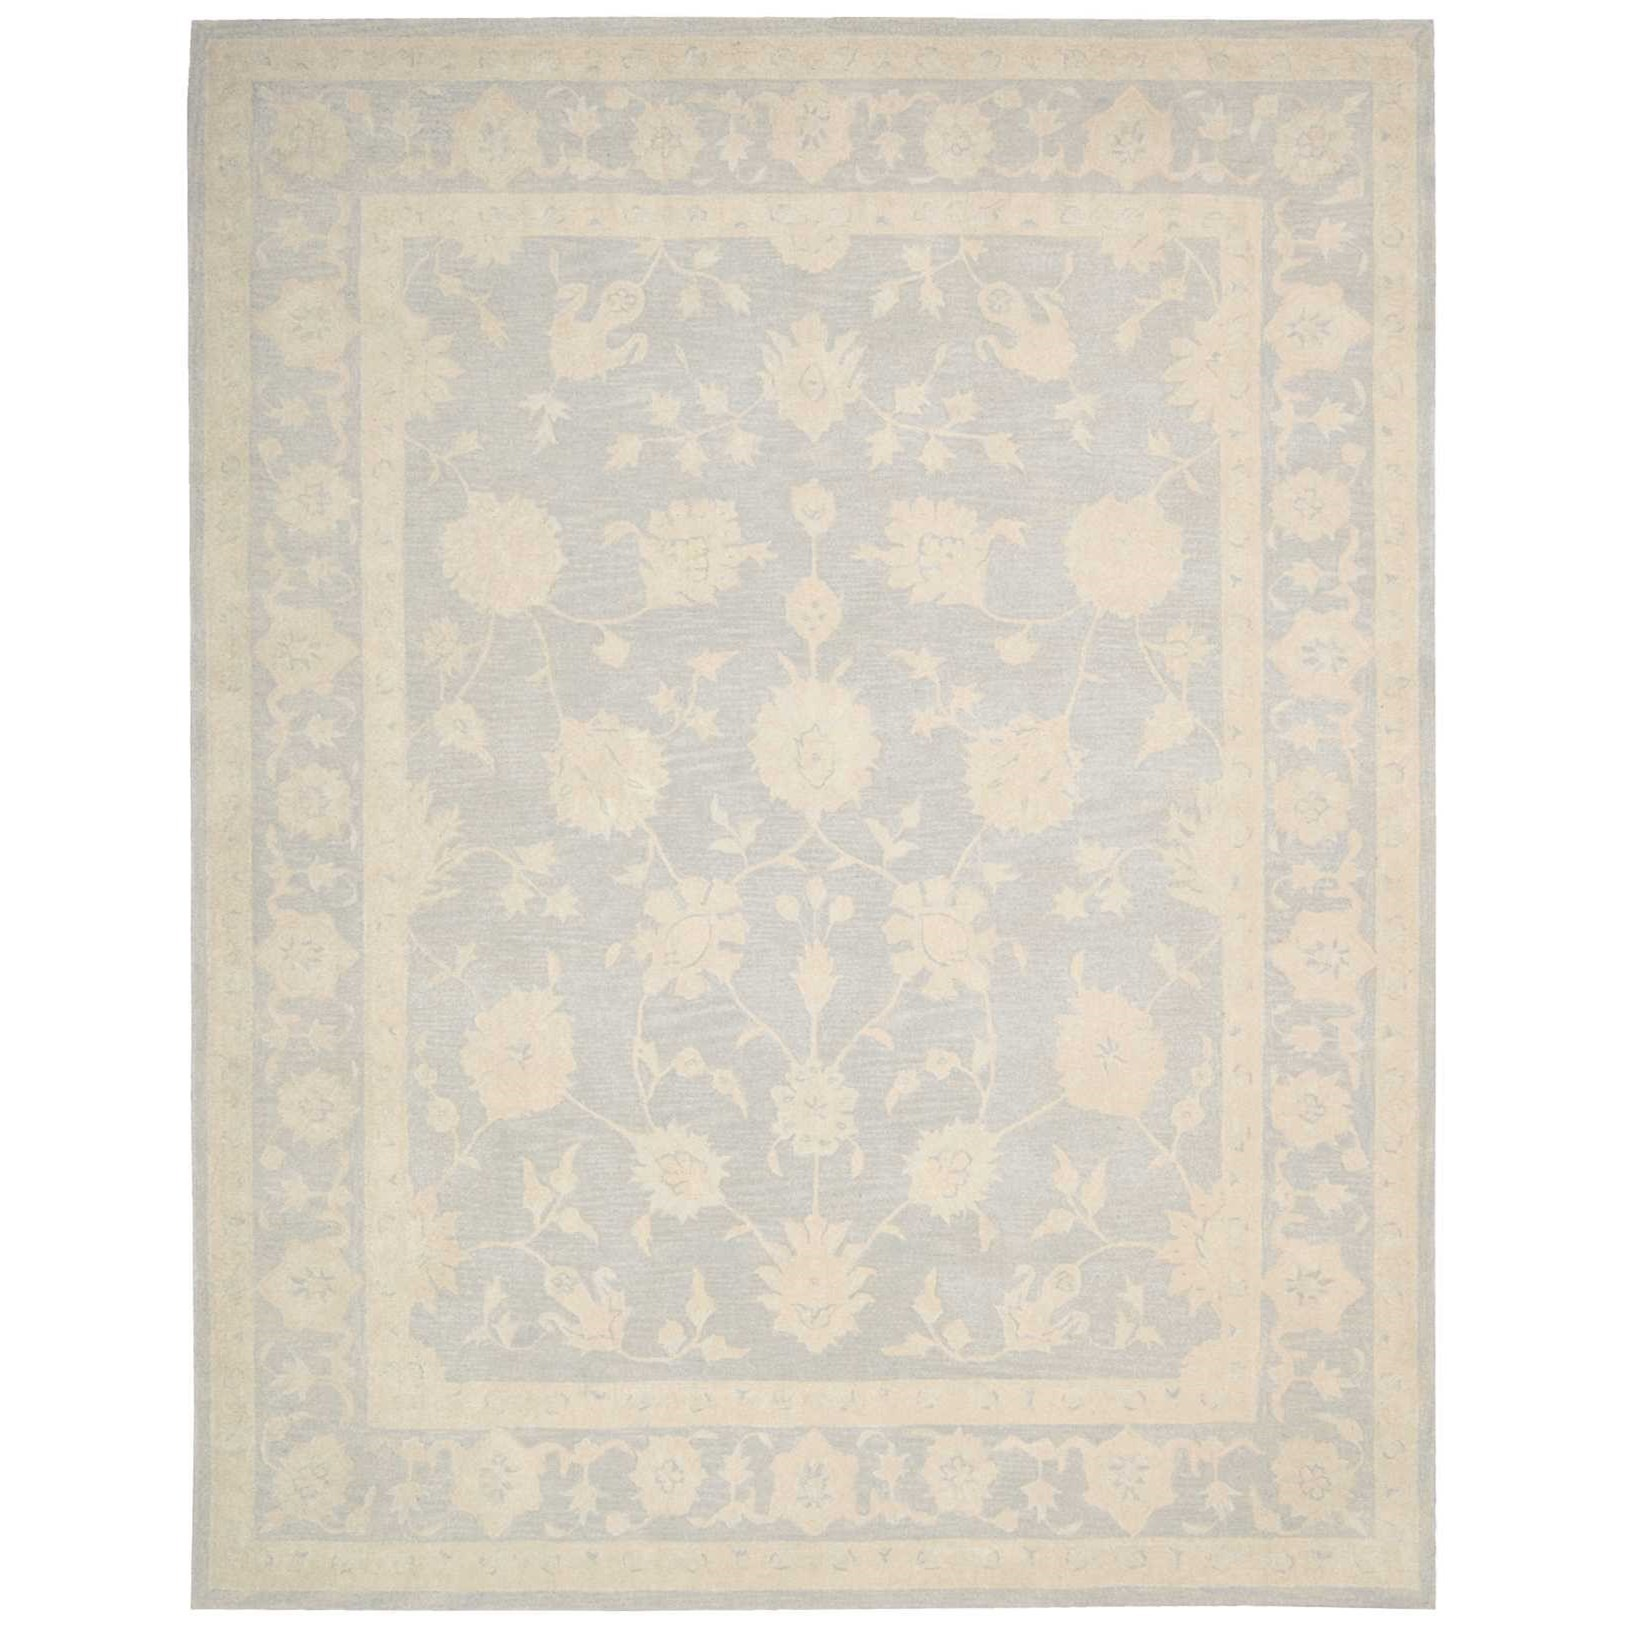 Zephyr 8' X 11' Light Blue Rug by Nourison at Home Collections Furniture